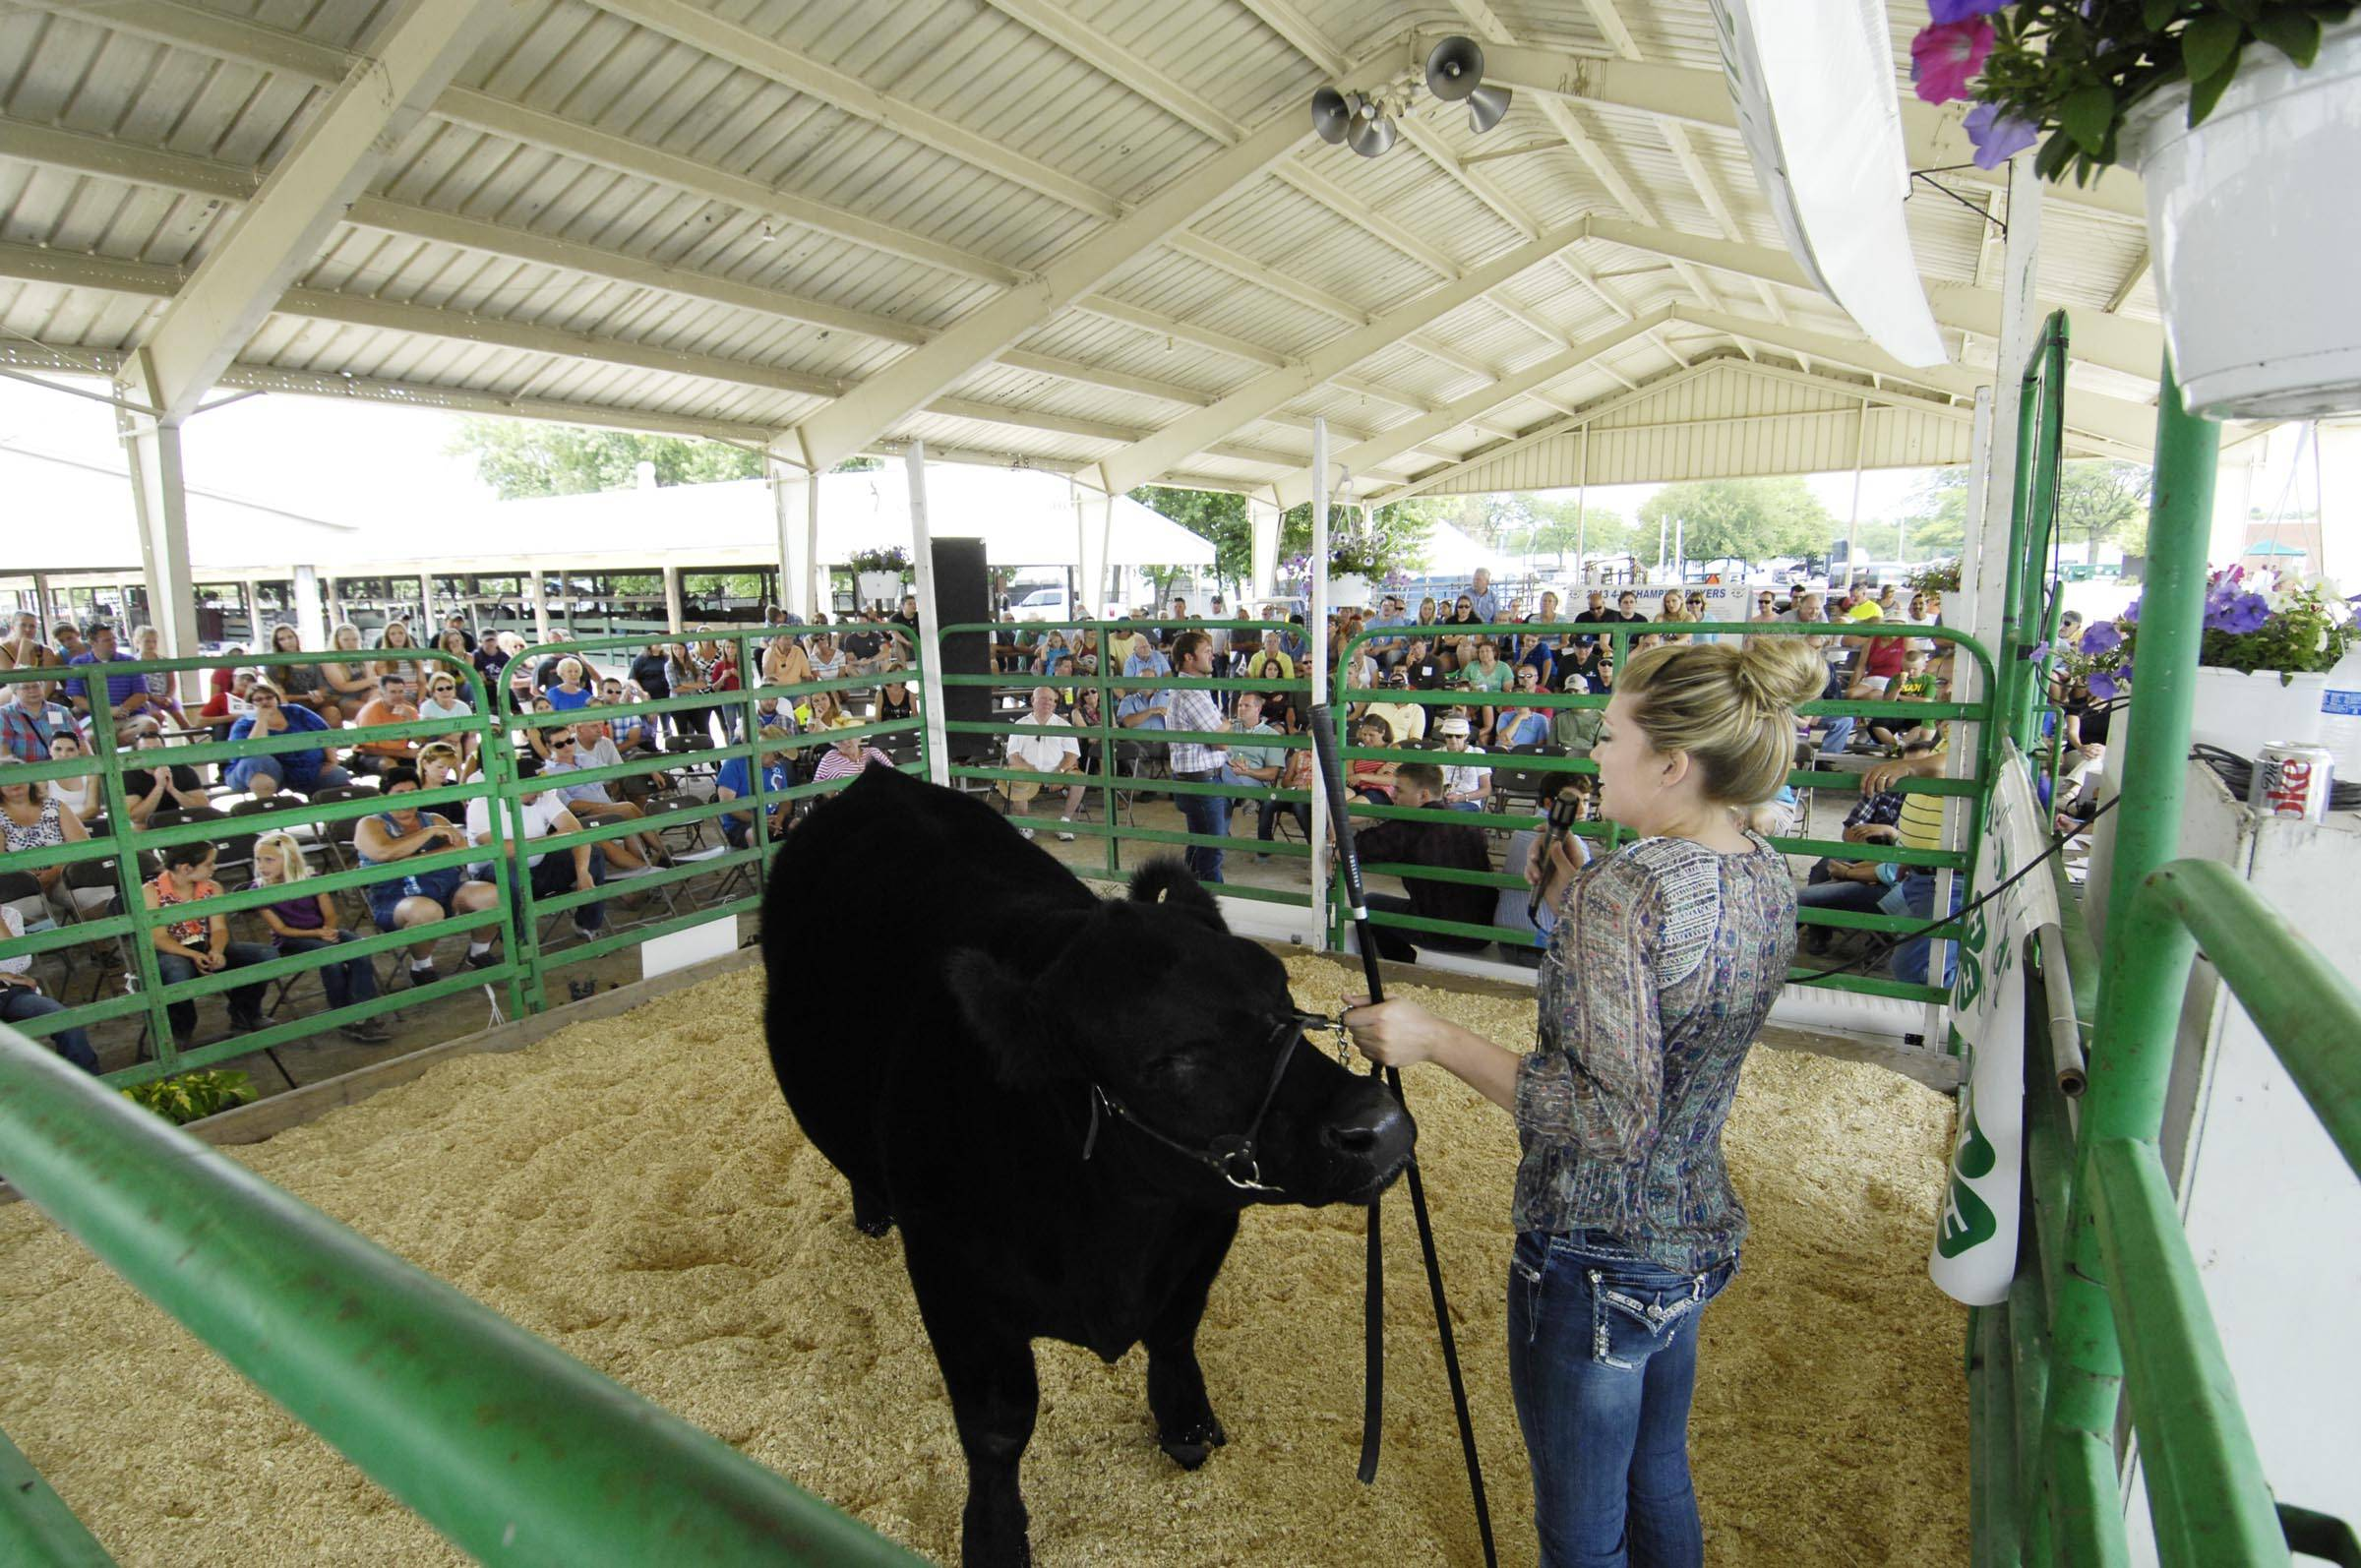 Danielle Engel begins to tear up as she thanks the crowd for their support in the Blue Ribbon Livestock Arena Sunday at the Kane County Fair. Her 1,305 pound steer won Grand Champion and she sold it for $3.30 pound. It was her last 4-H competition. She is a fourth generation of the Engel family, from Burlington, to compete at the fair.